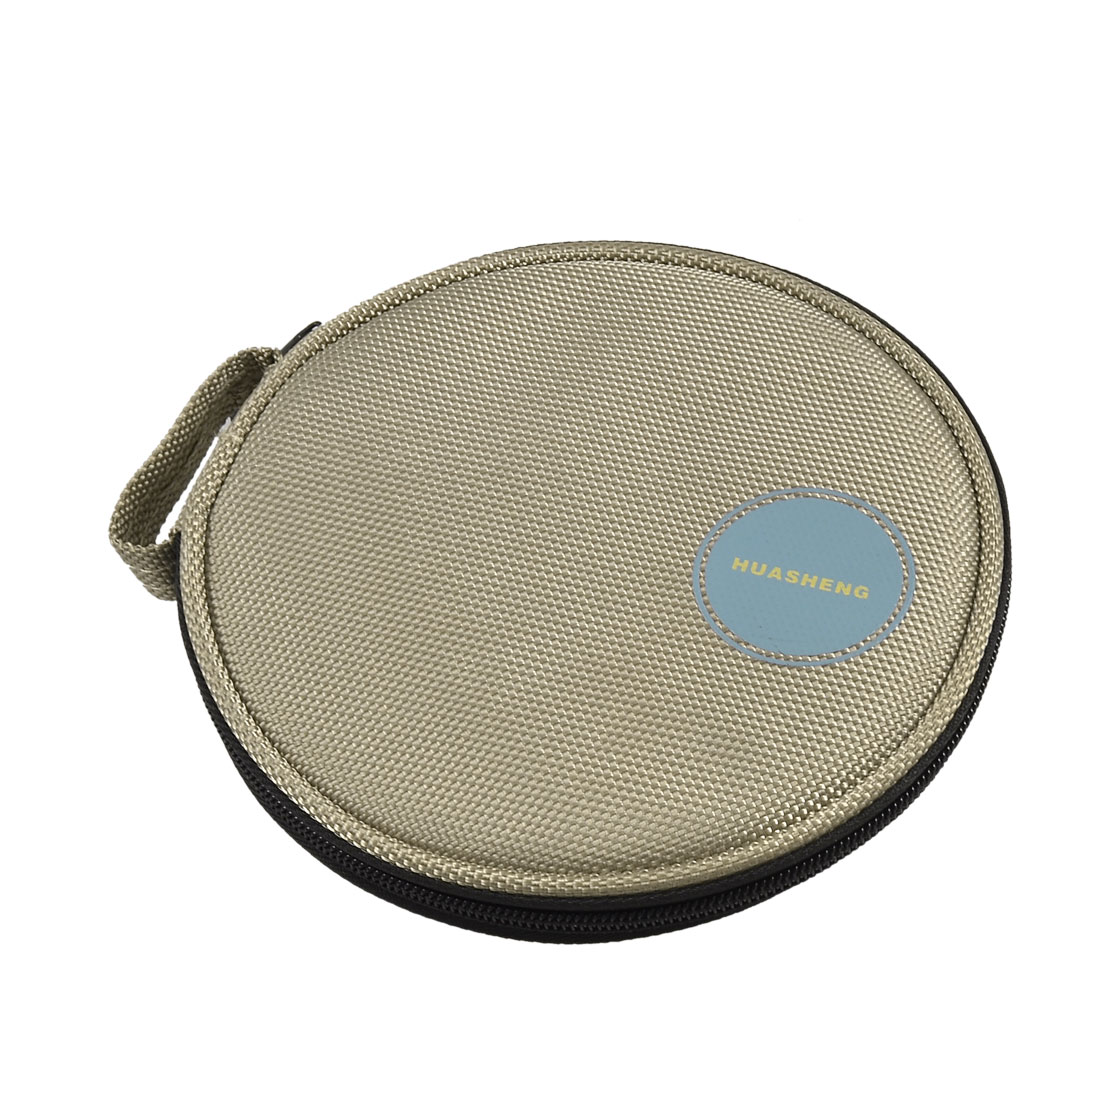 Home Car 10 Sheets CD DVD Box Zipper Closure Khaki Round Case